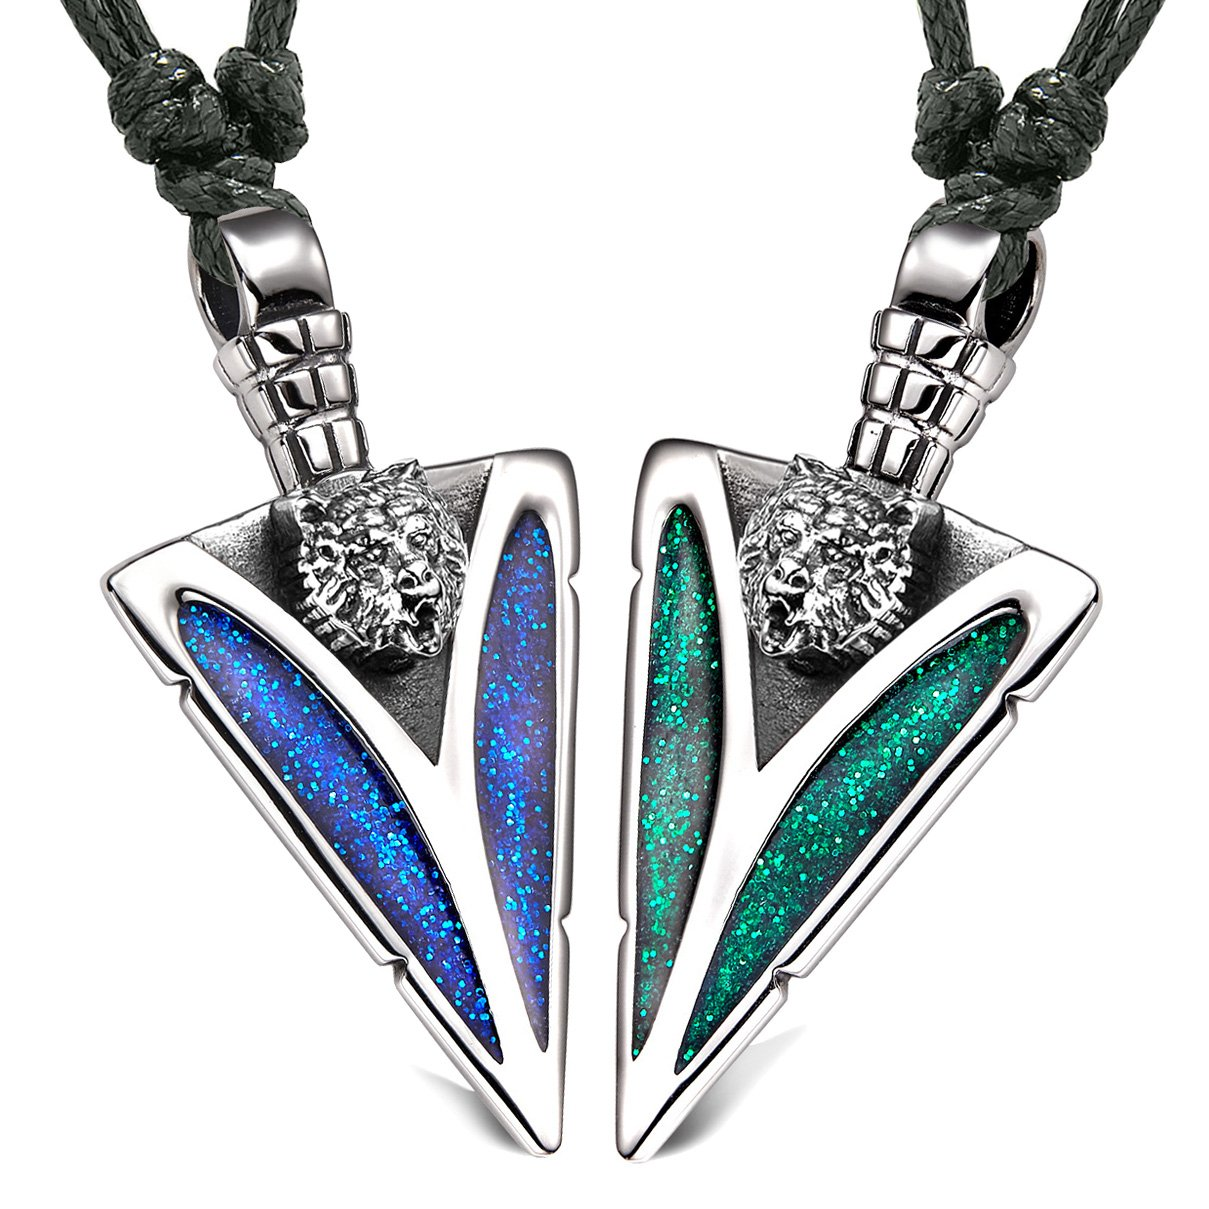 Arrowhead Wild Grizzly Bear Head Love Couples BFF Set Amulets Sparkling Blue Green Adjustable Necklaces